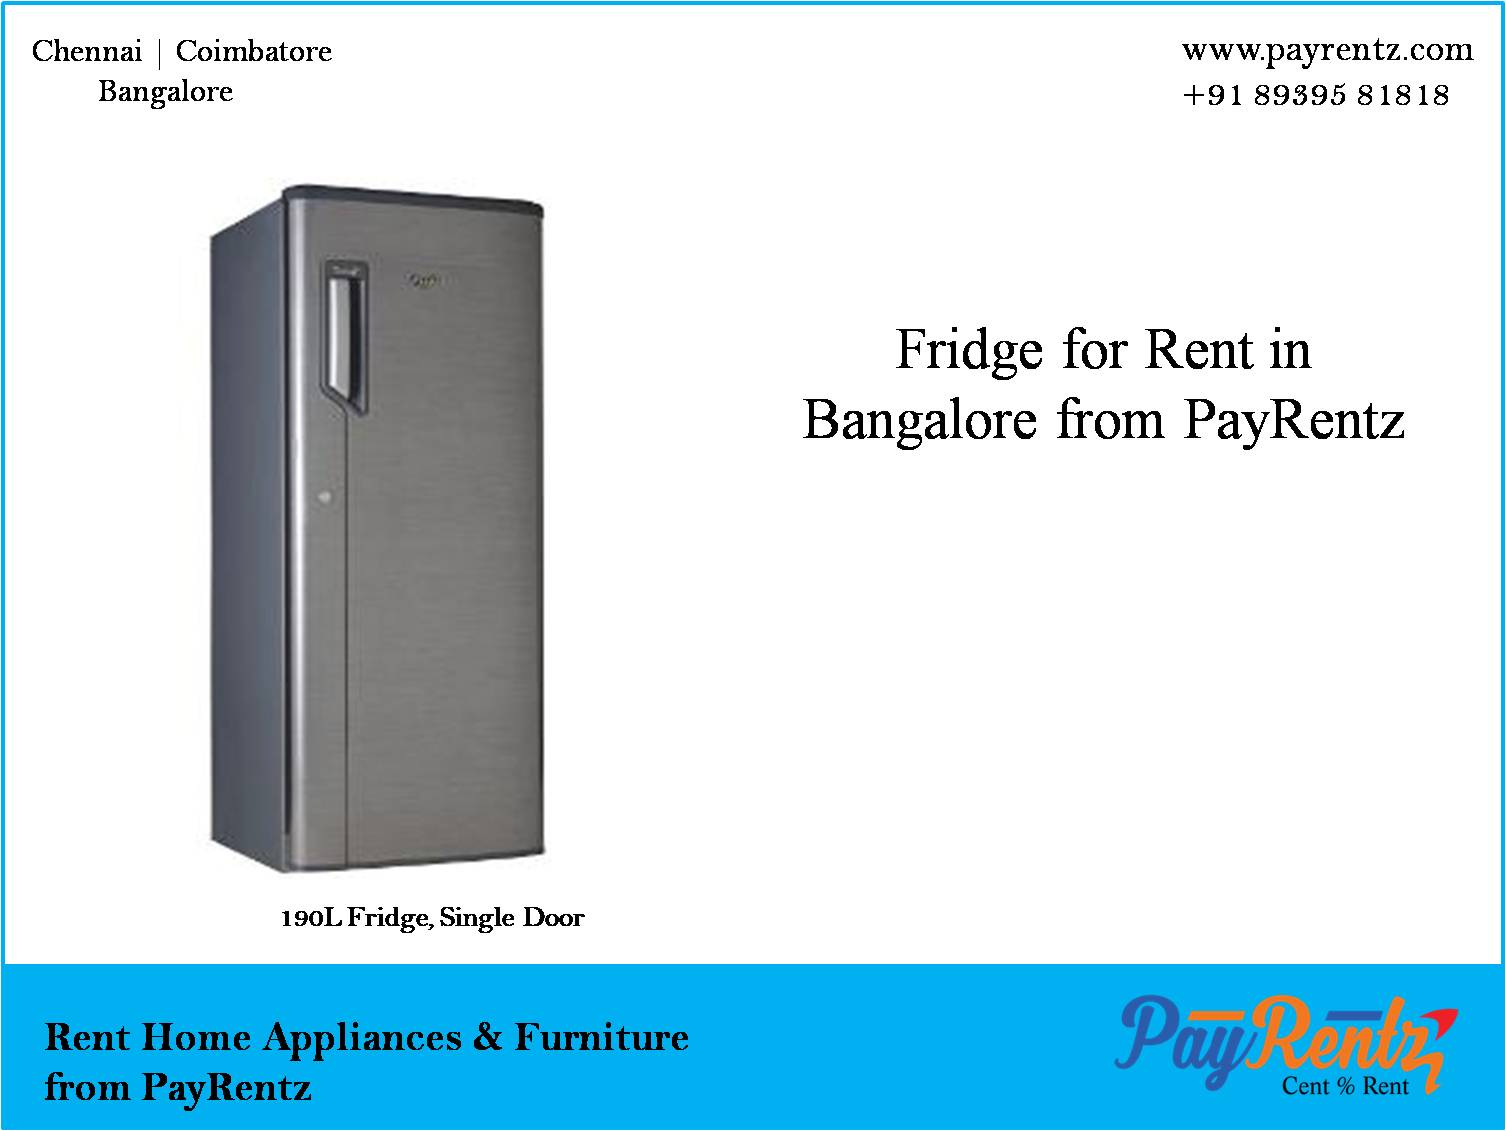 Bangalore, Bengaluru, fridge on rent in Bangalore, rent fridge in Bangalore, fridge rental in Bangalore,